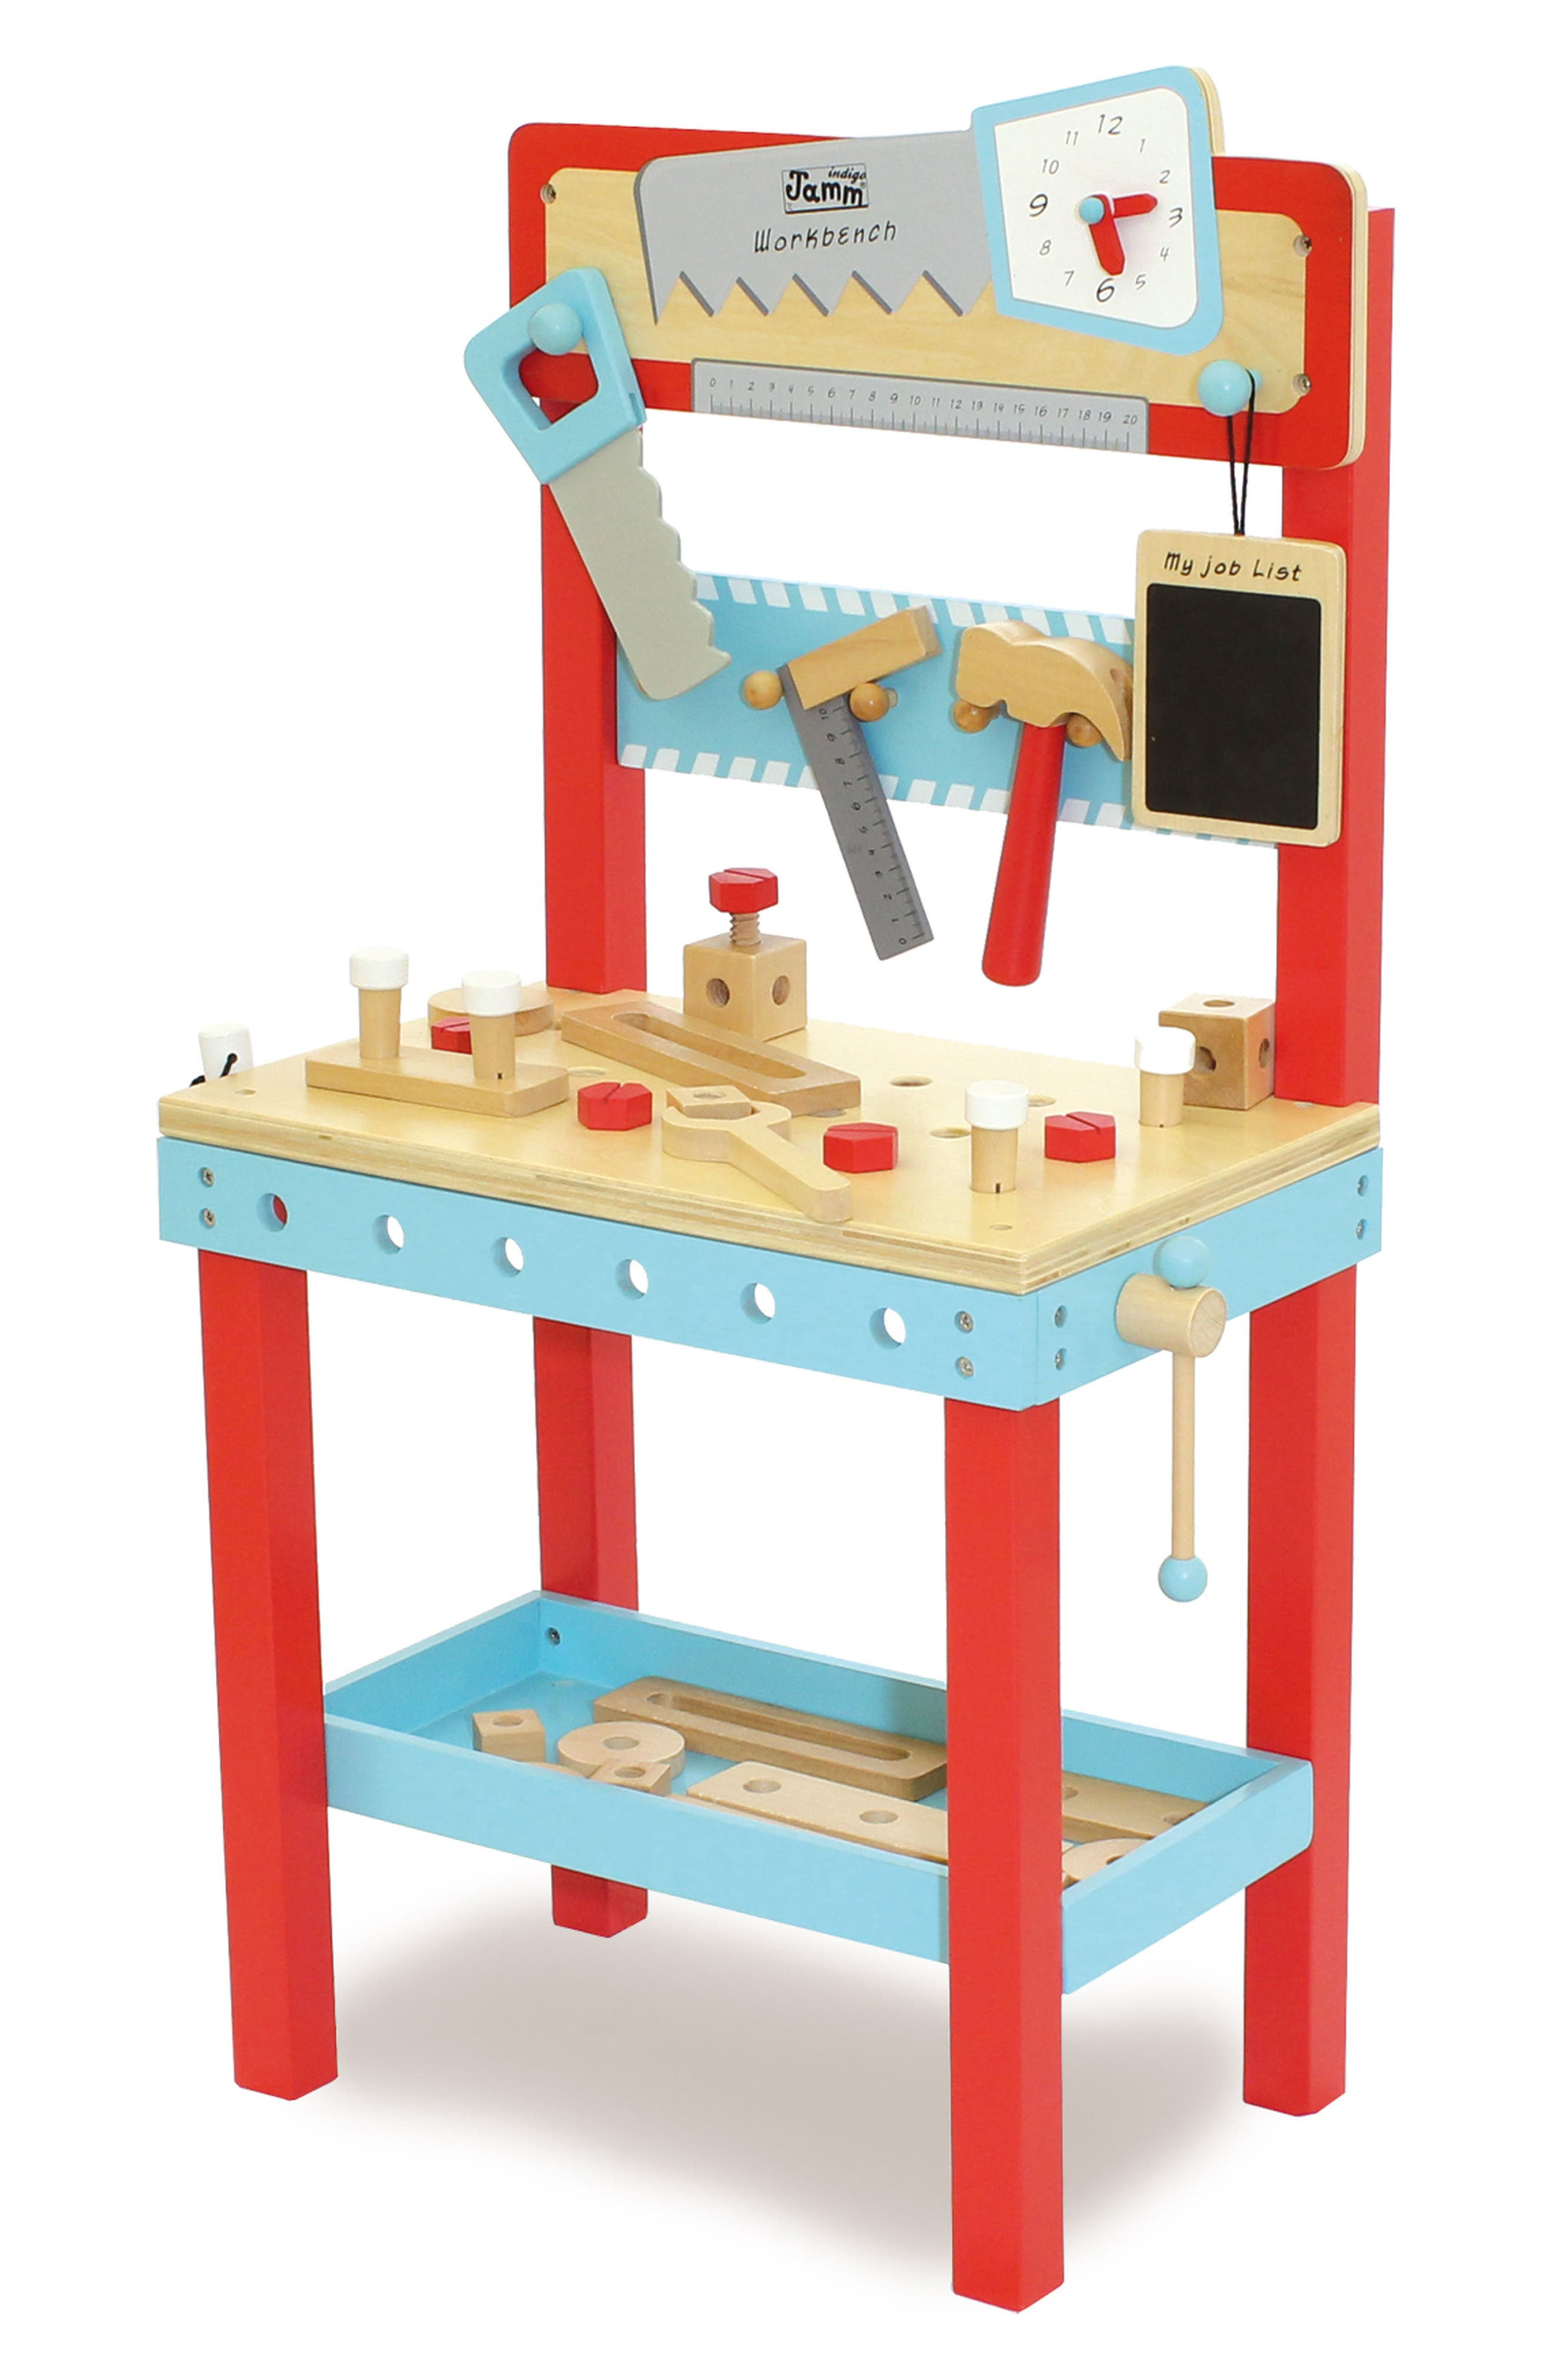 Indigo Jamm Little Carpenters Workbench